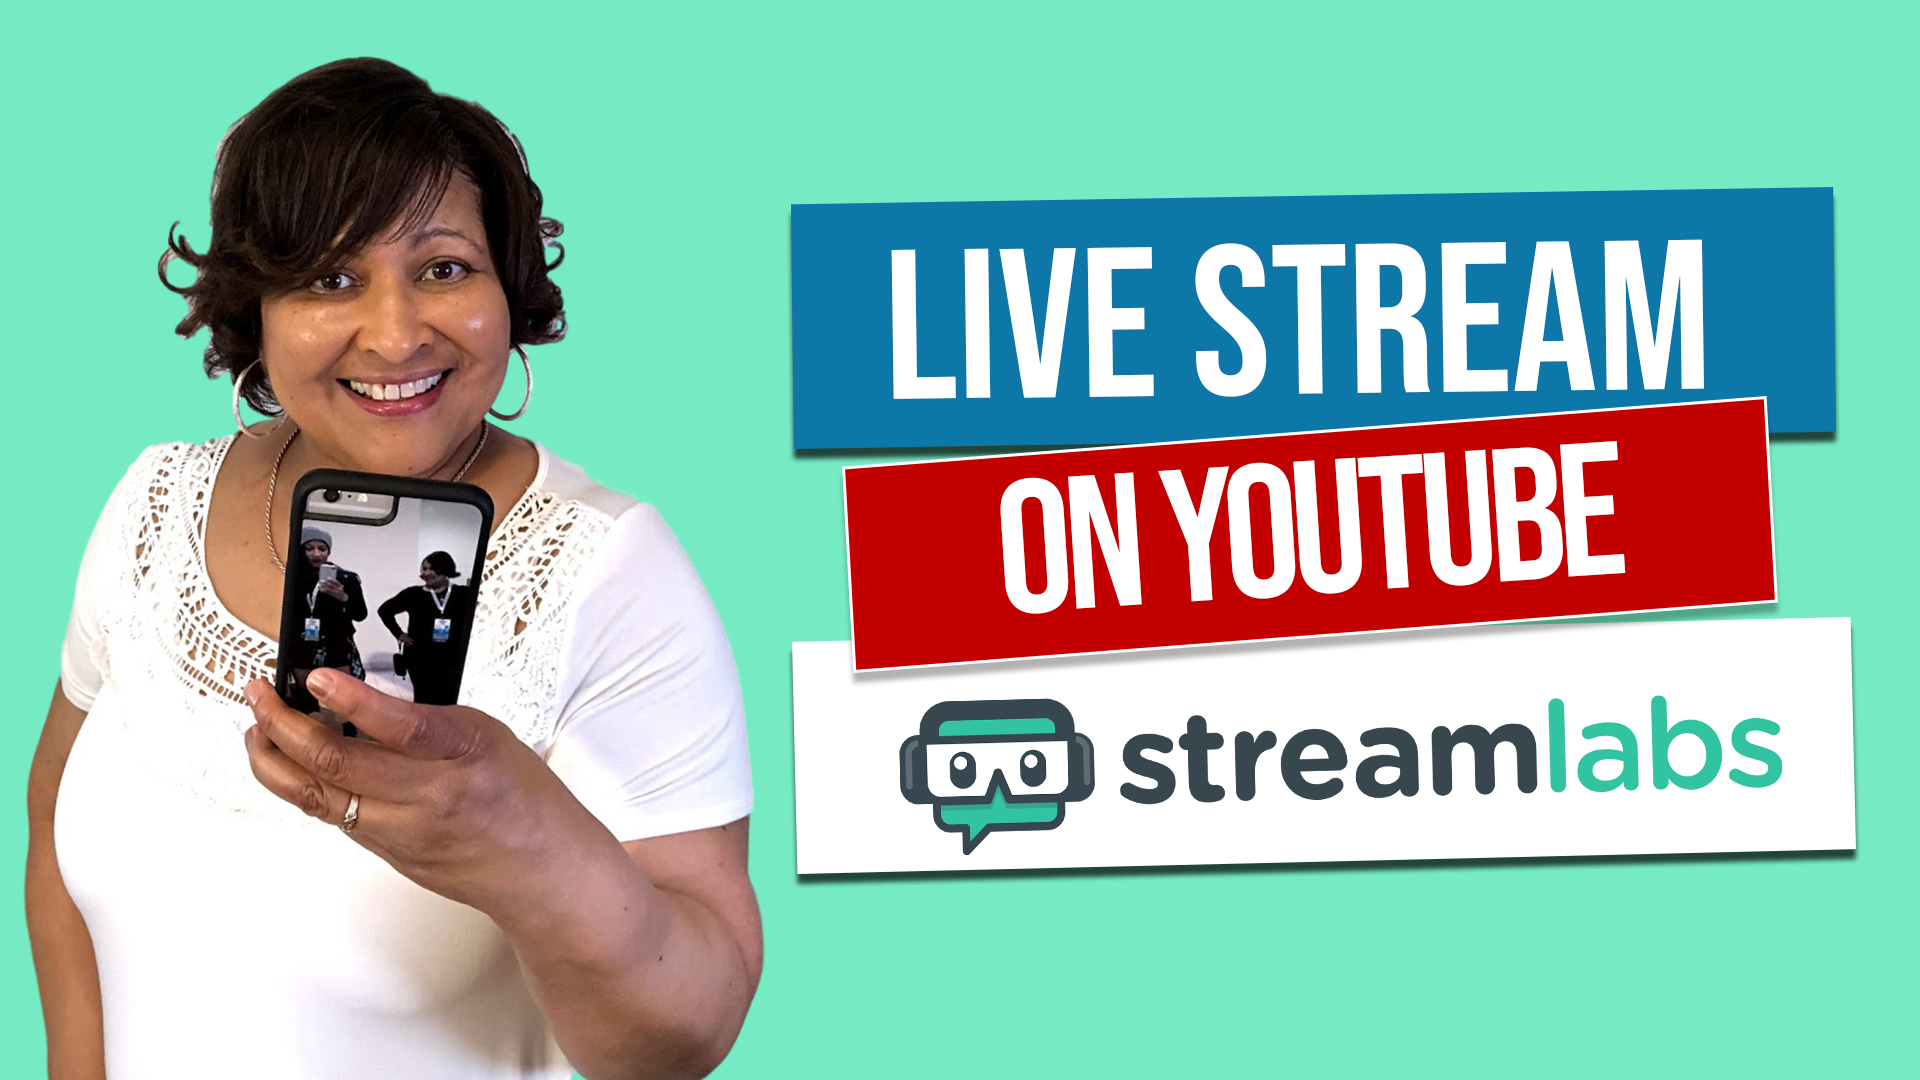 Streamlabs Mobile App Let S You Stream To Twitch Youtube Mixer And More Livestreaming Twitch Twitcht Youtube Live Live Video Streaming Photo Recognition